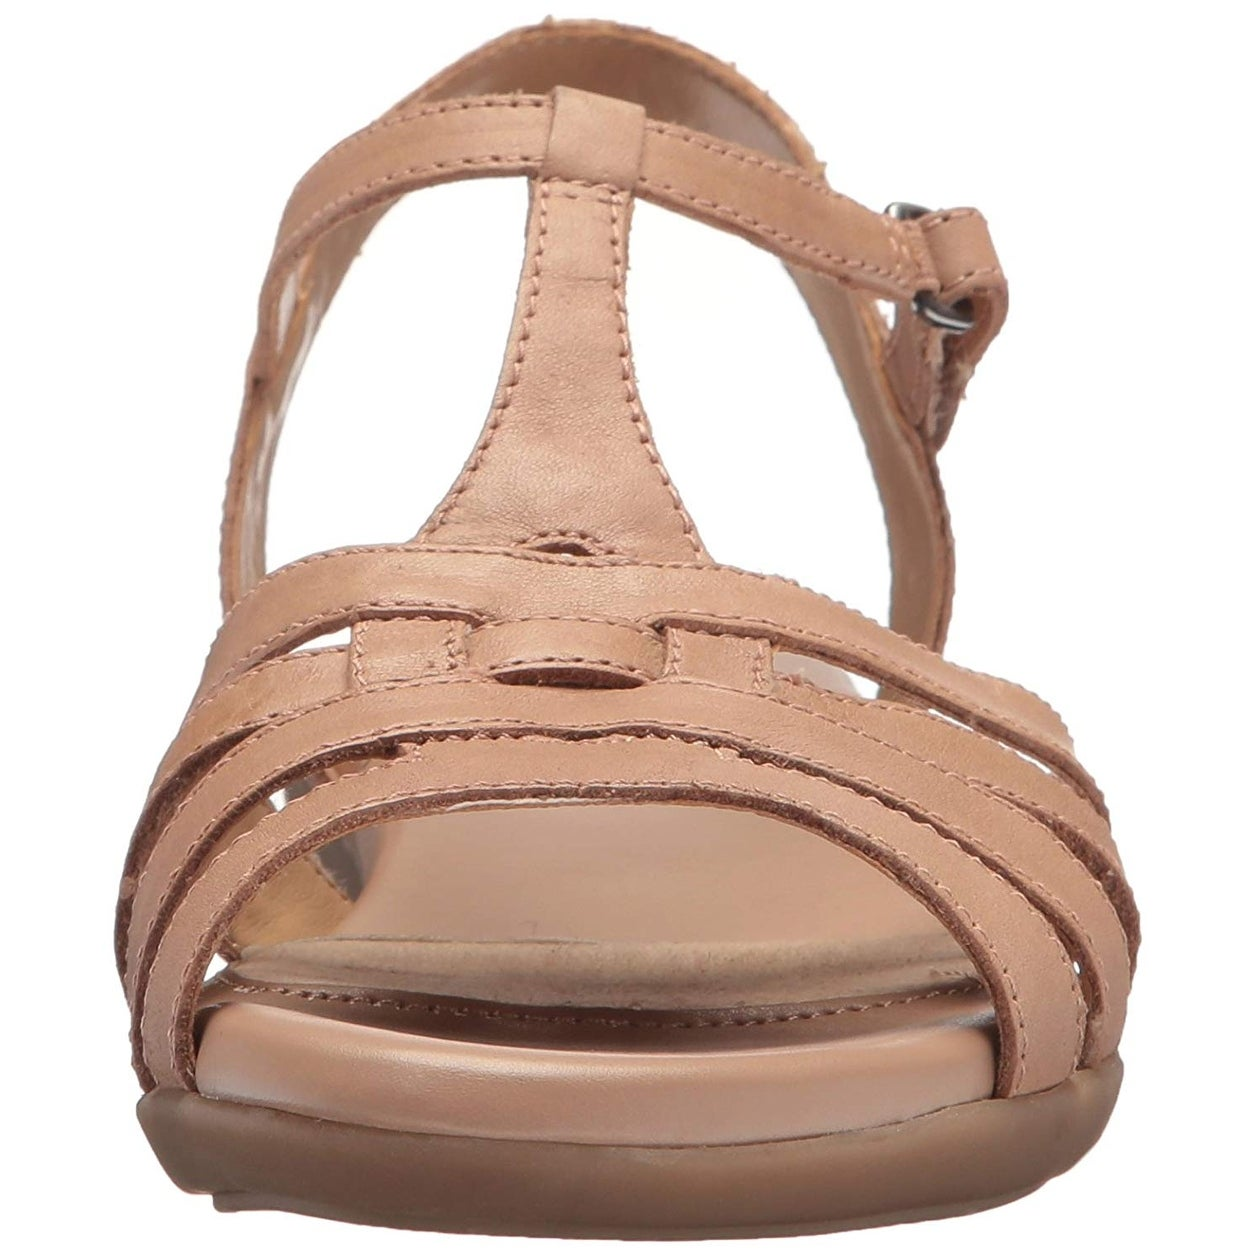 bcf554ccdcc5a Shop Naturalizer Womens Nanci Leather Open Toe Casual T-Strap Sandals -  Ships To Canada - Overstock - 21495658